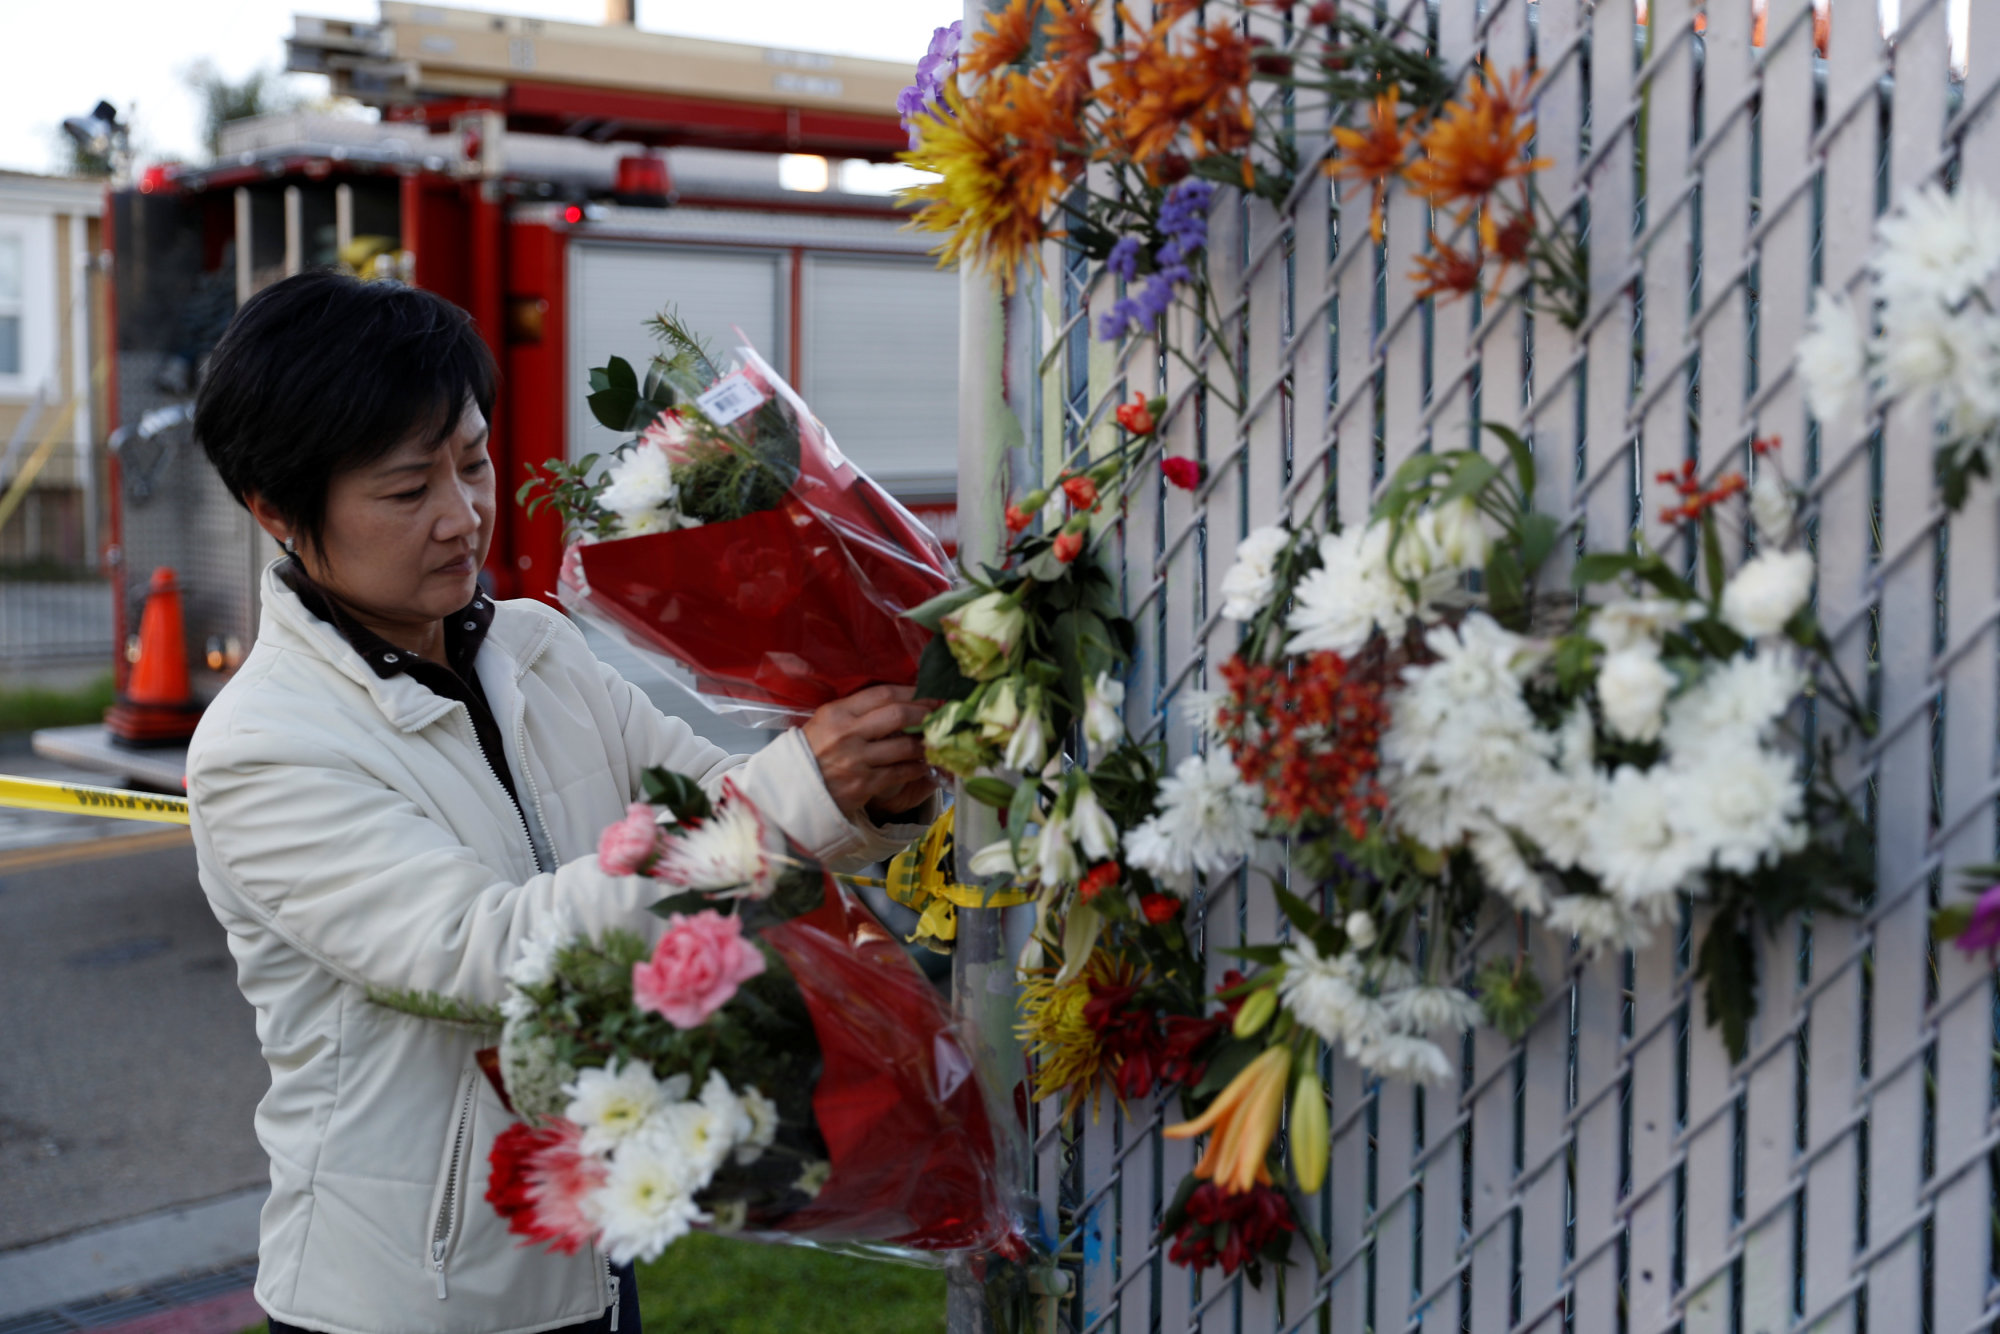 A woman places flowers at a makeshift memorial on Saturday near the scene of a deadly fire in Oakland, California.   REUTERS